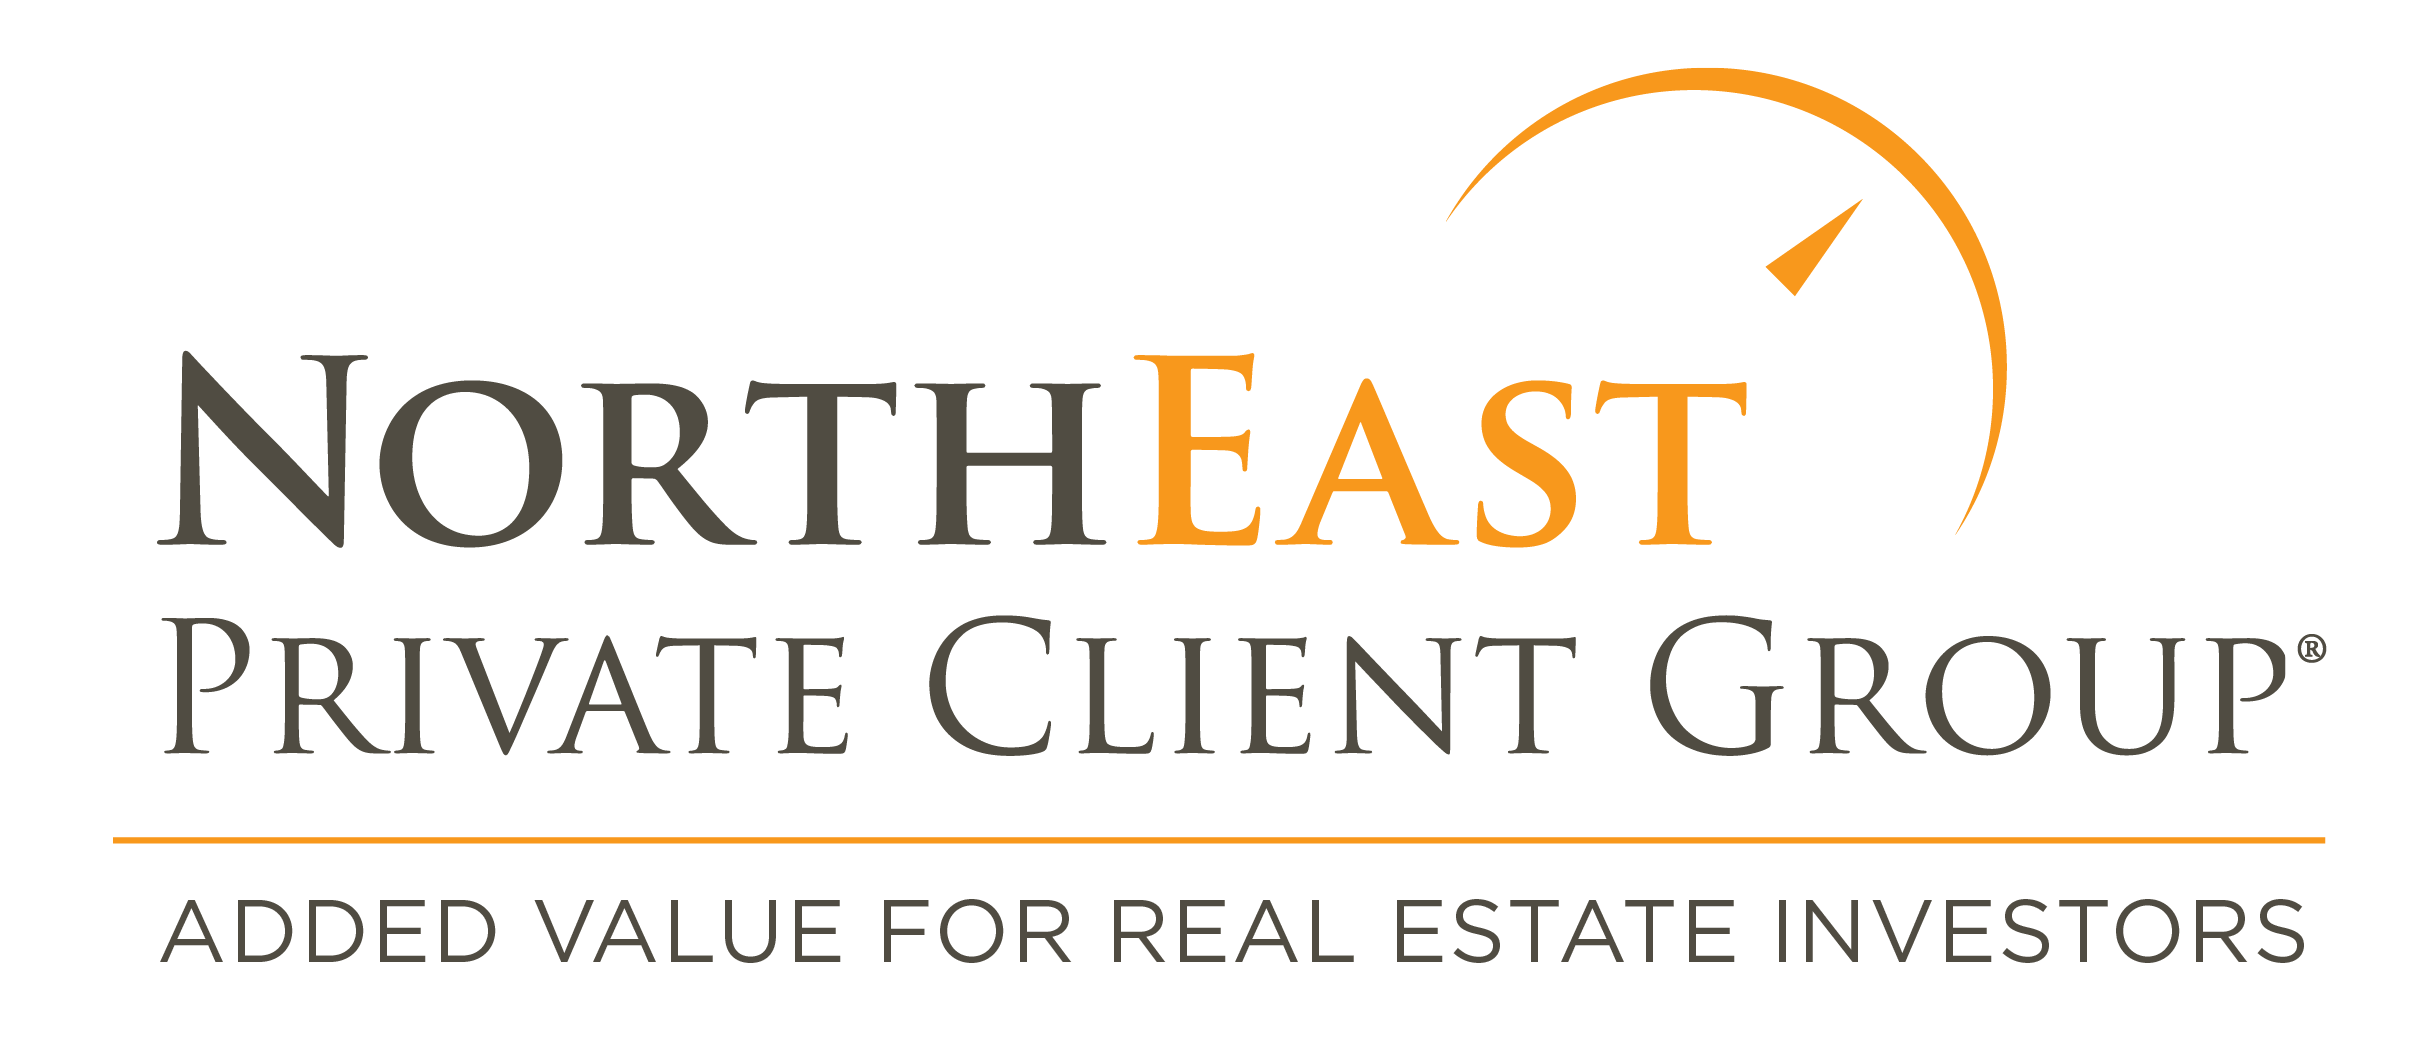 Northeast Private Client Group Logo